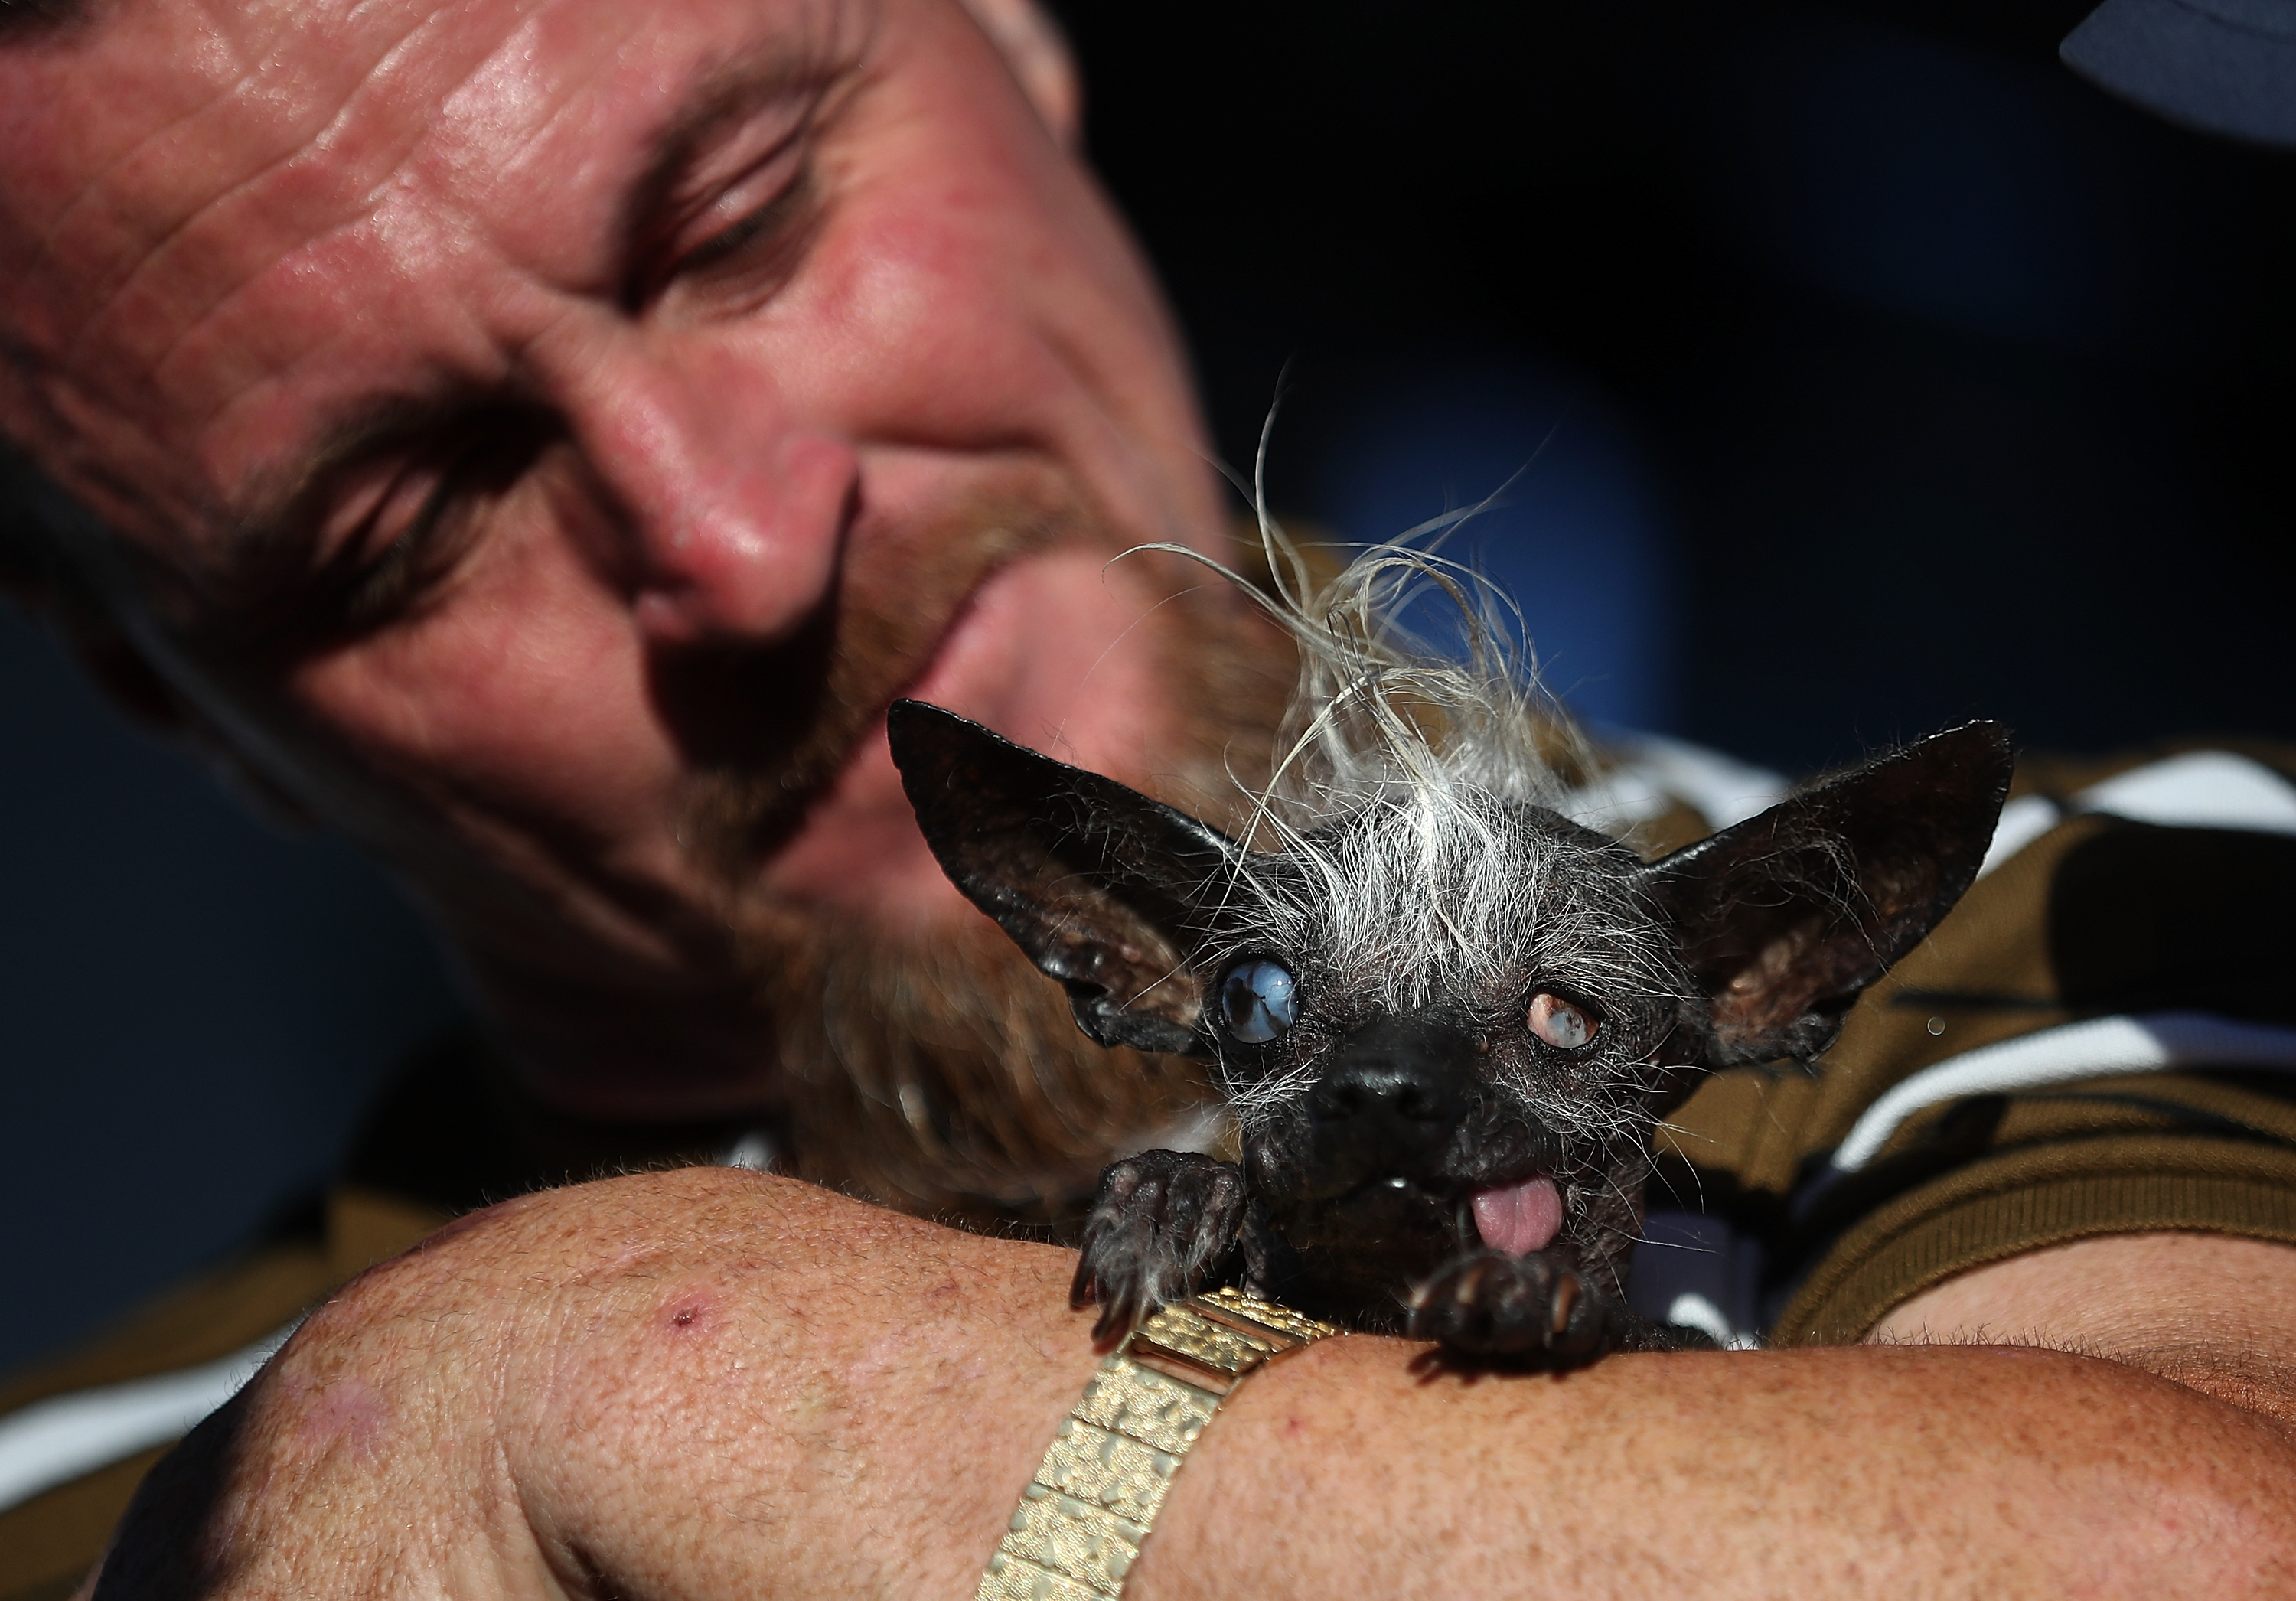 PETALUMA, CA - JUNE 24:  Jason Wurtz of Van Nuys, California, holds his dog Sweepee Rambo after winning the 2016 World's Ugliest Dog contest at the Sonoma-Marin Fair on June 24, 2016 in Petaluma, California. Sweepee Rambo, a blind Chinese Crested dog, won the annual World's Ugliest Dog contest.  (Photo by Justin Sullivan/Getty Images)